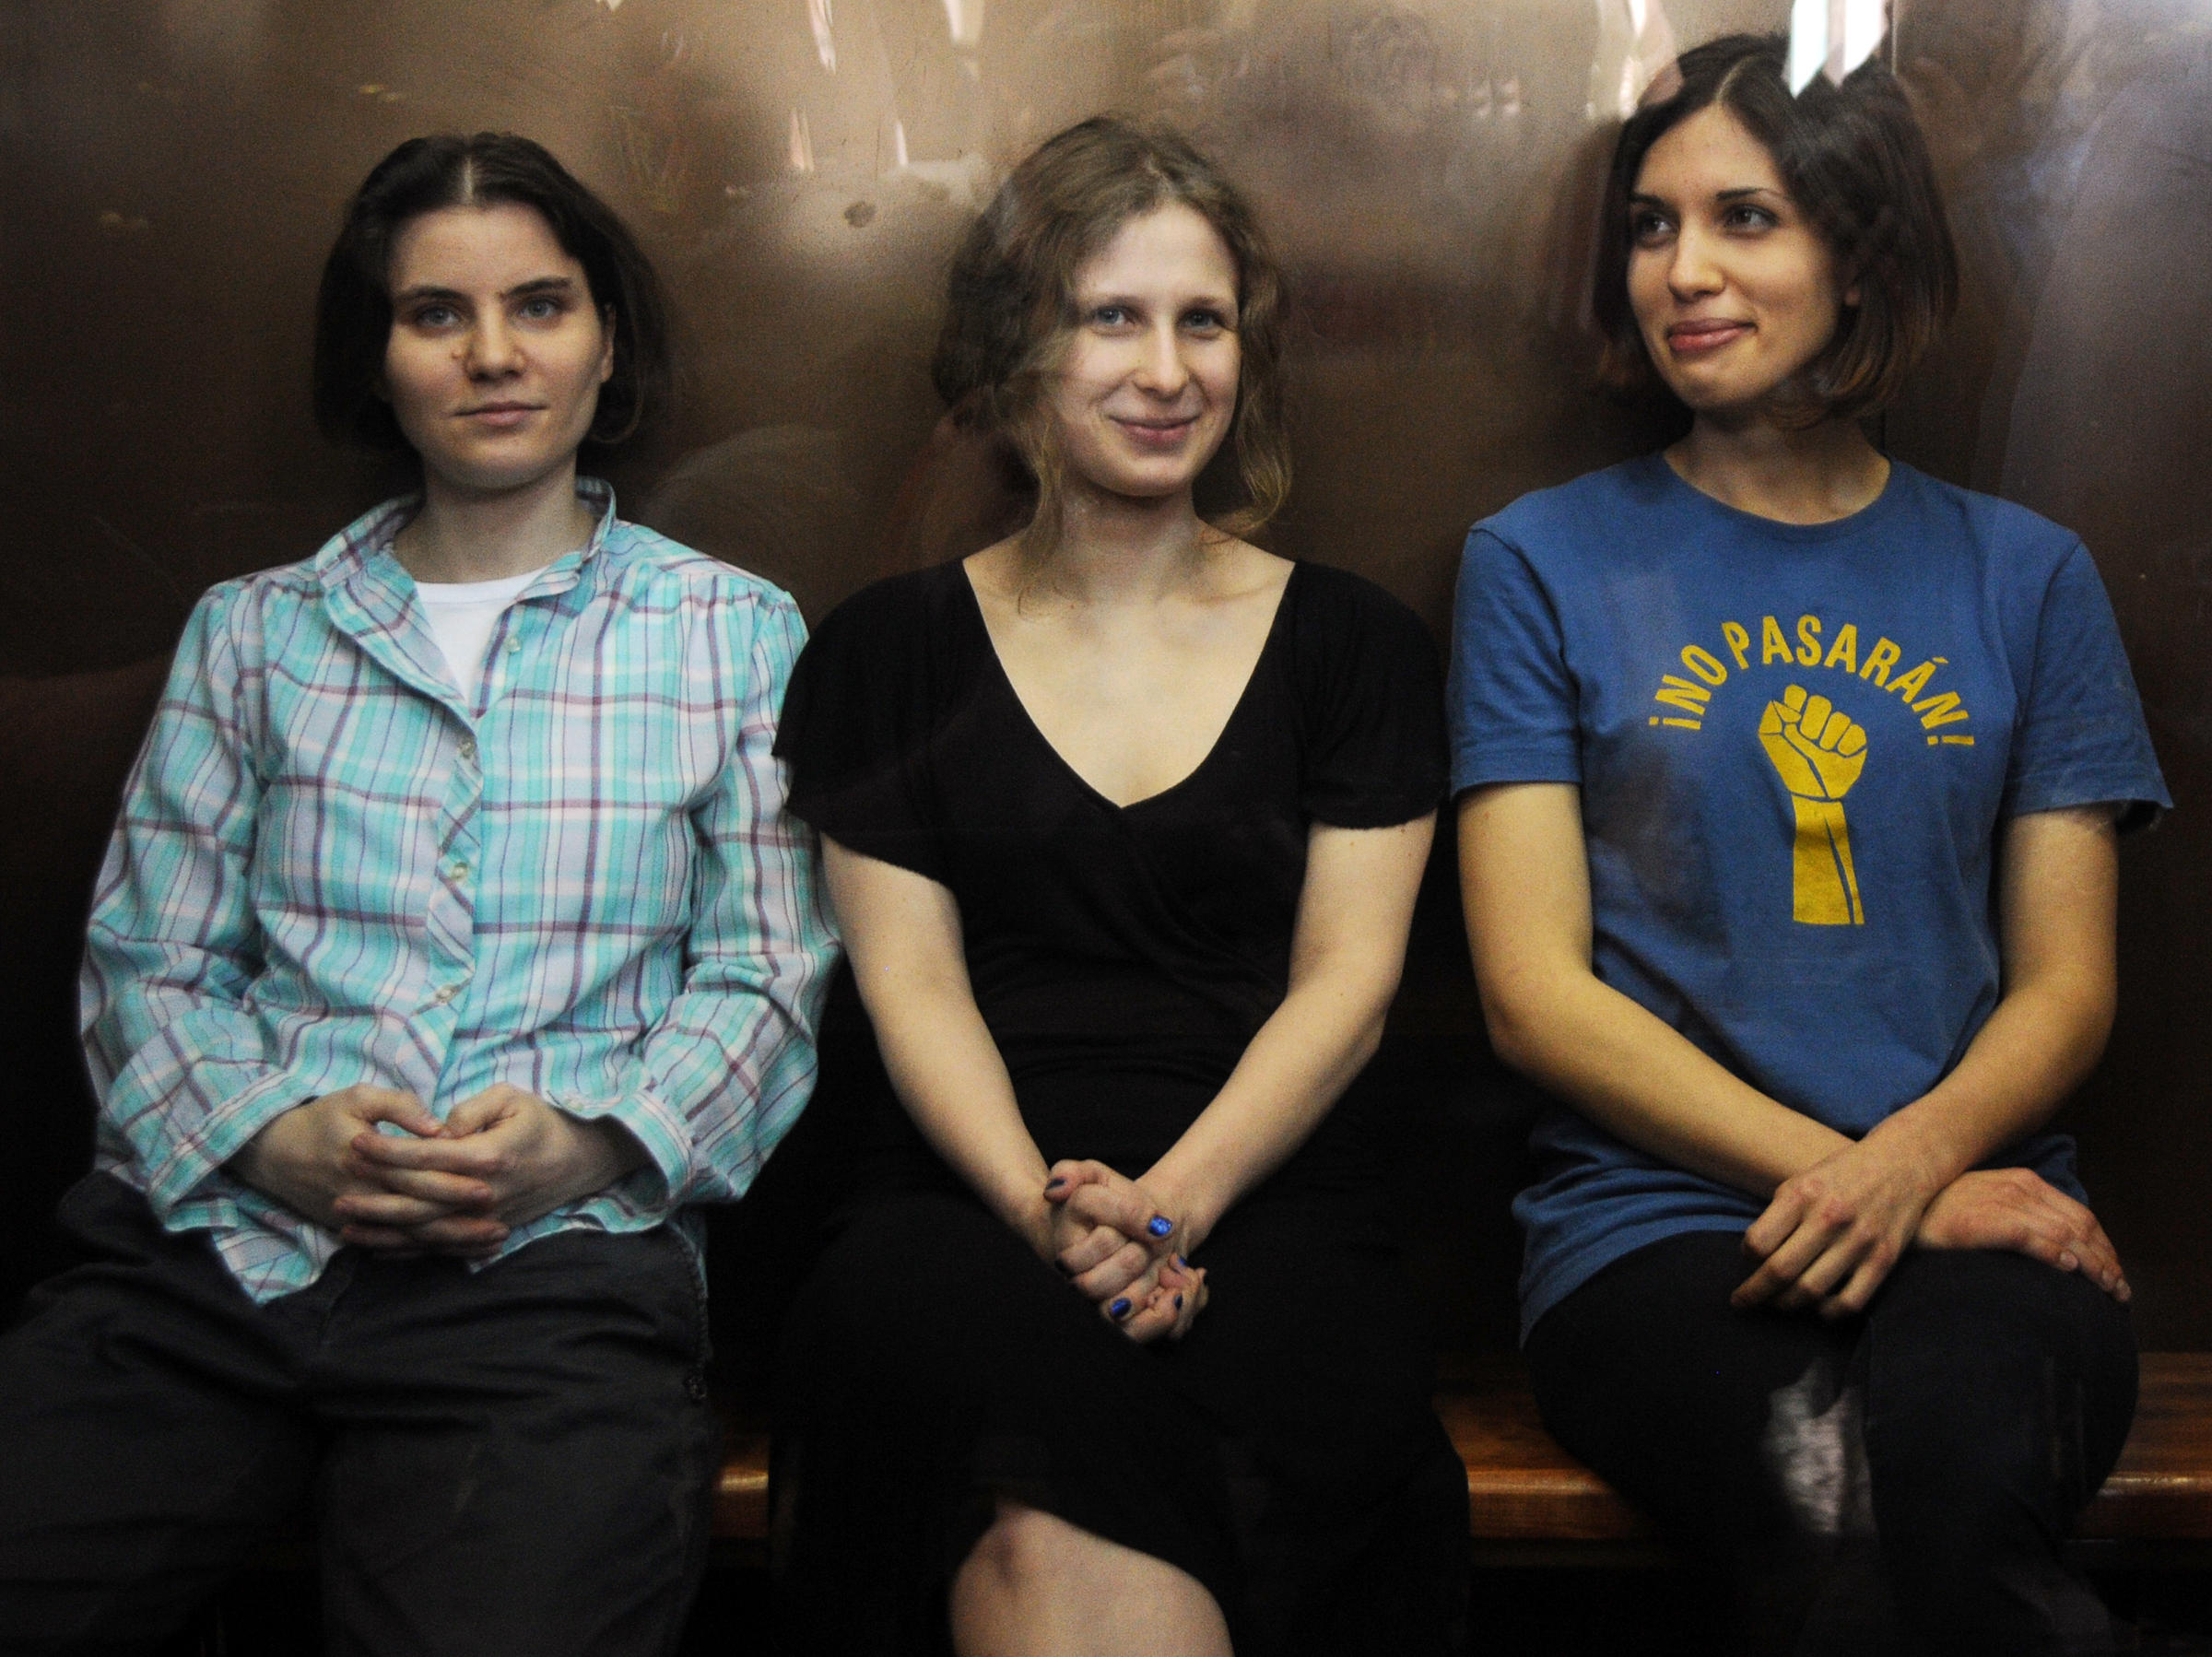 Members of the all-girl punk band Pussy Riot: Nadezhda Tolokonnikova  (right), Maria Alyokhina (center) and Yekaterina Samutsevich (left) in a  glass-walled ...